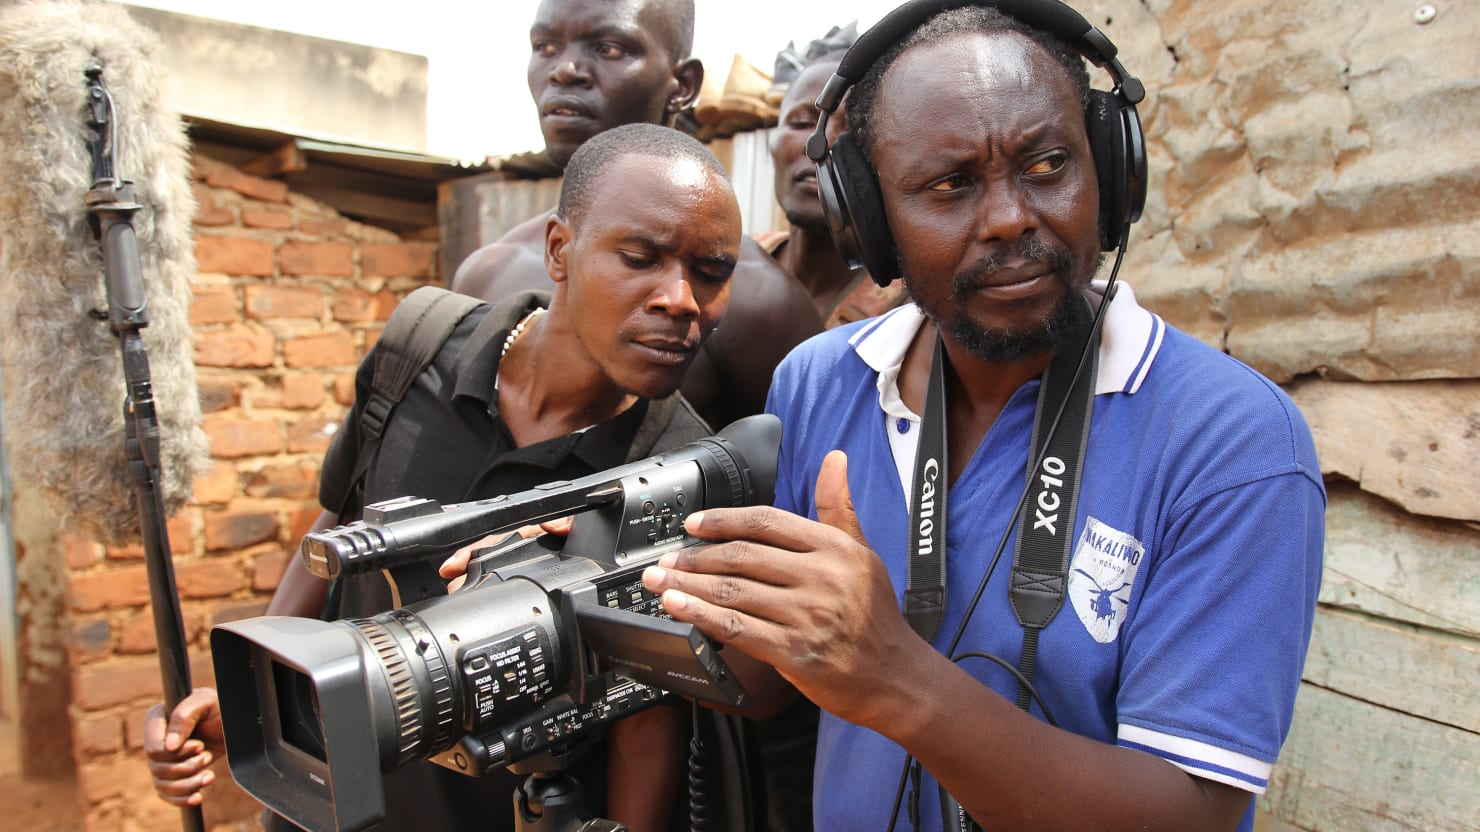 How Africa's Quentin Tarantino Is Putting Hollywood to Shame